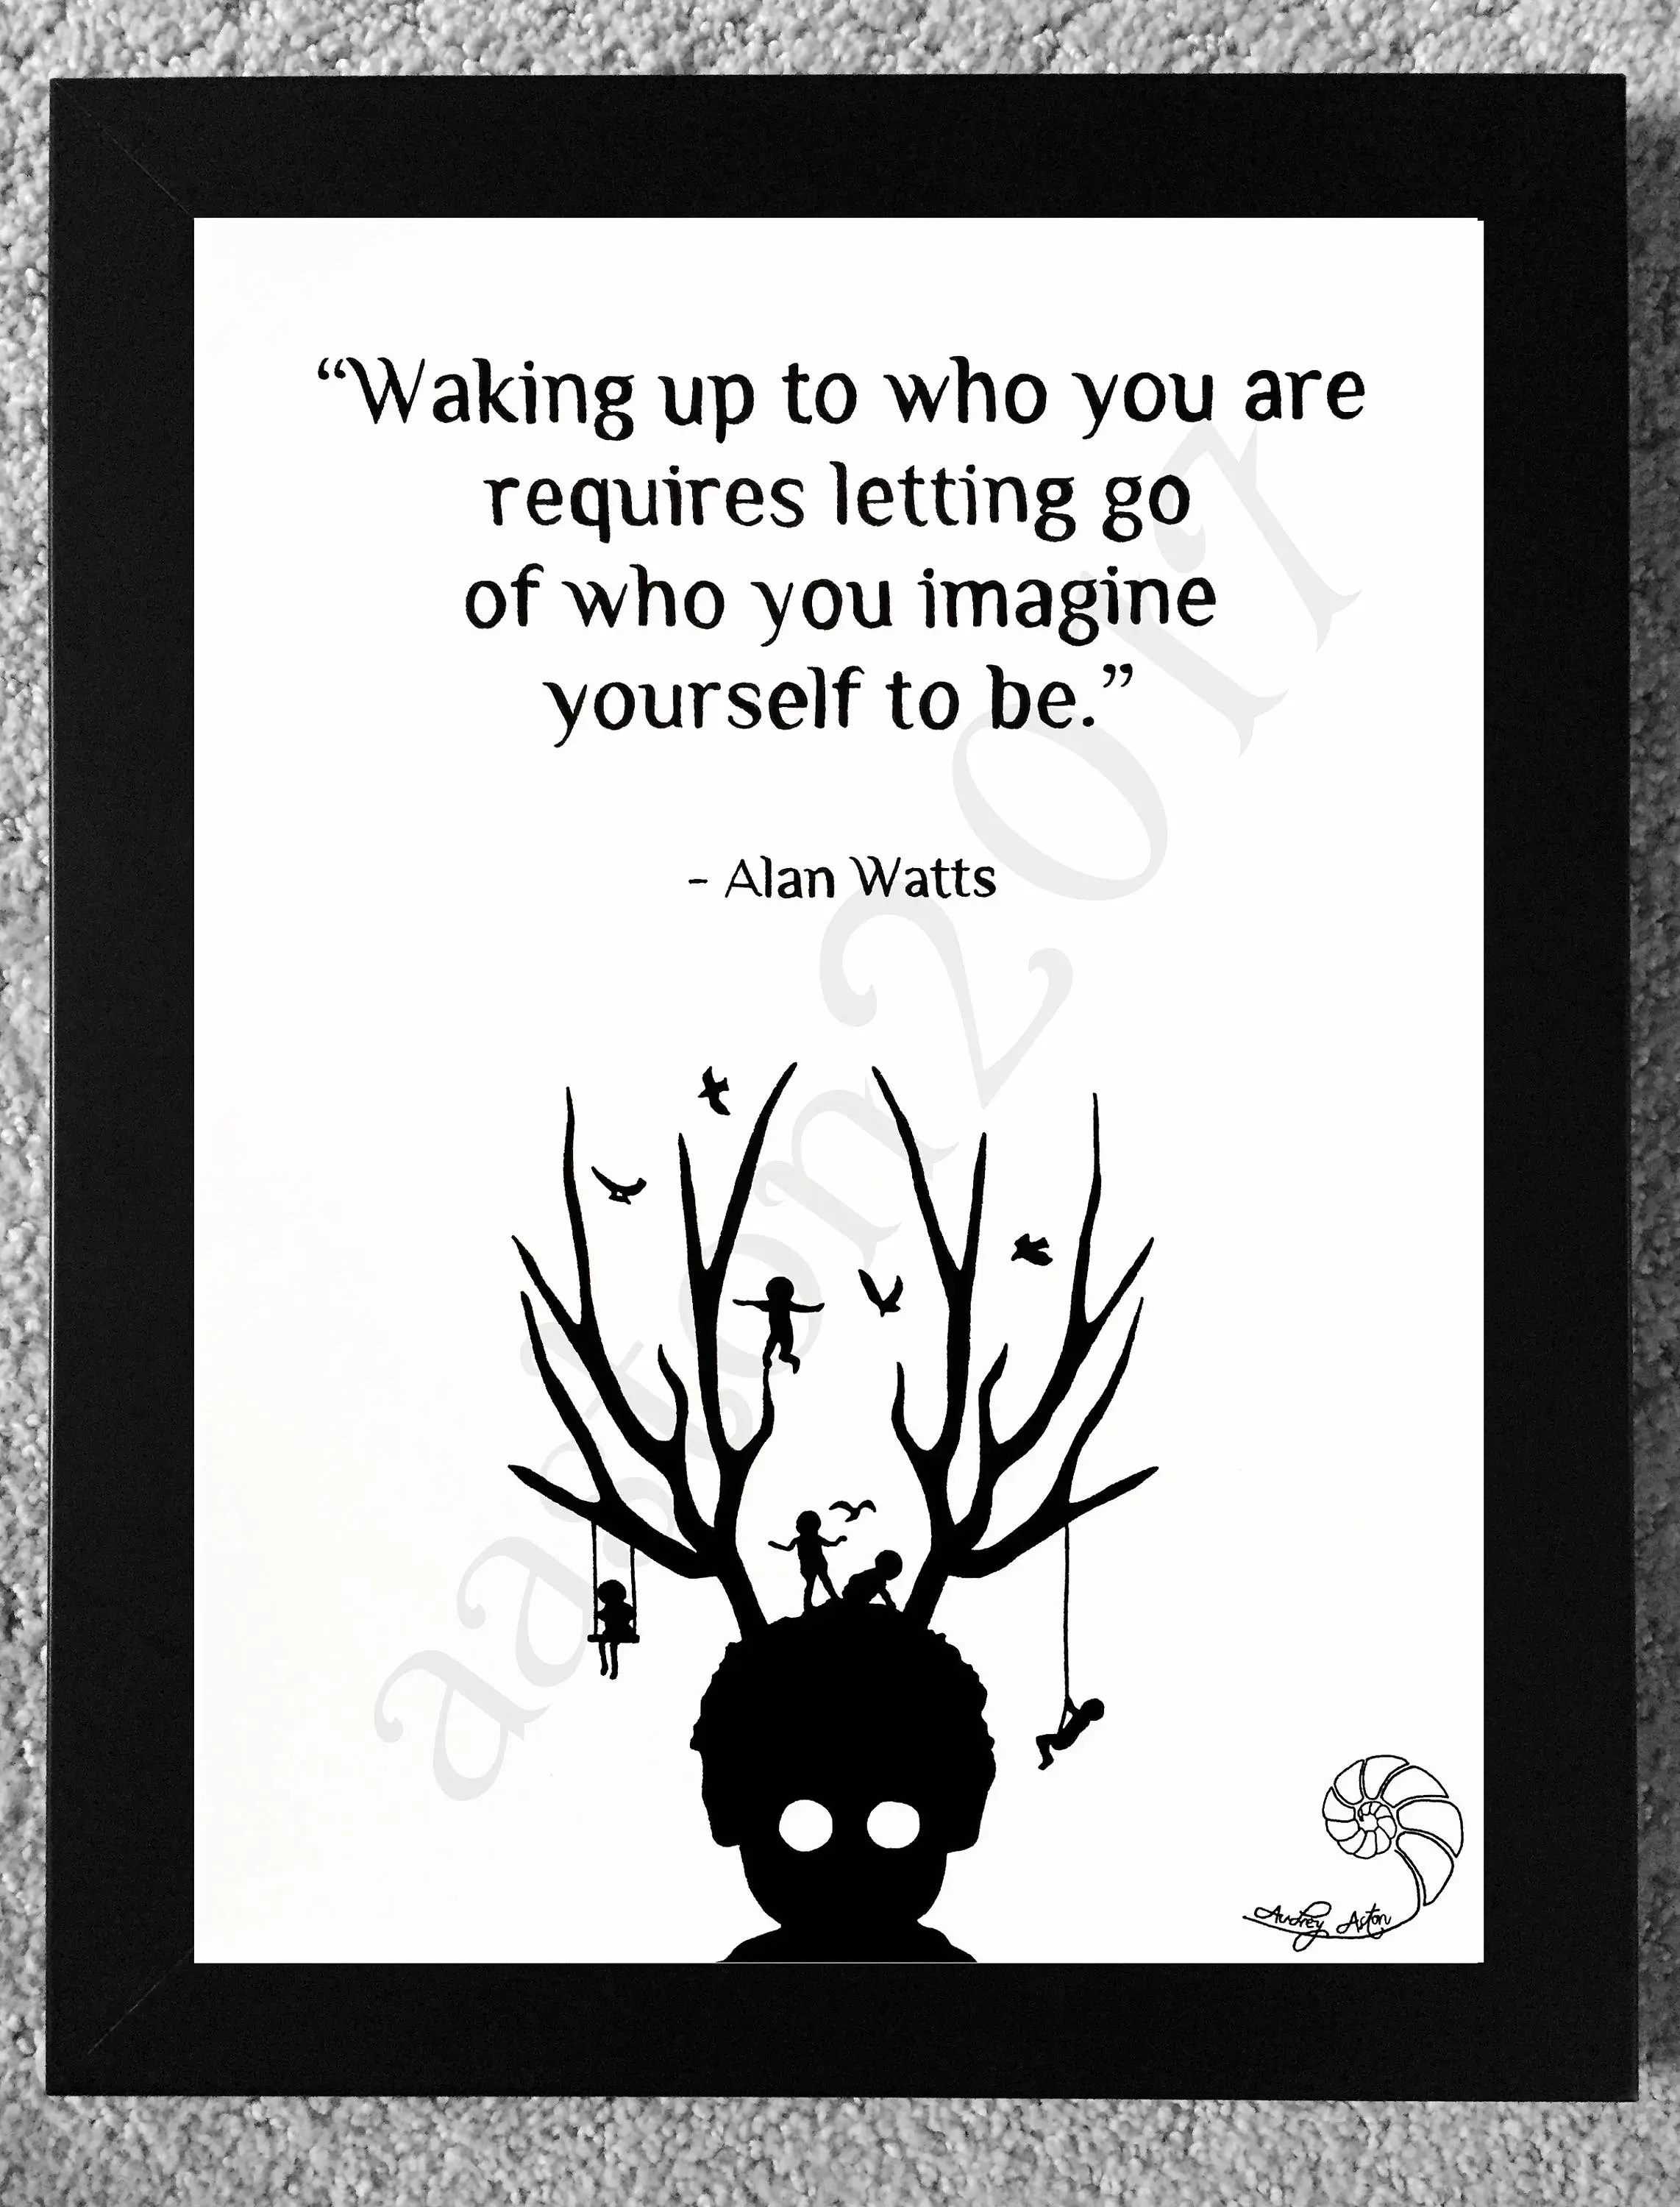 Alan Watts Libros Alan Watts Hand Drawn Quote Waking Up To Who You Are